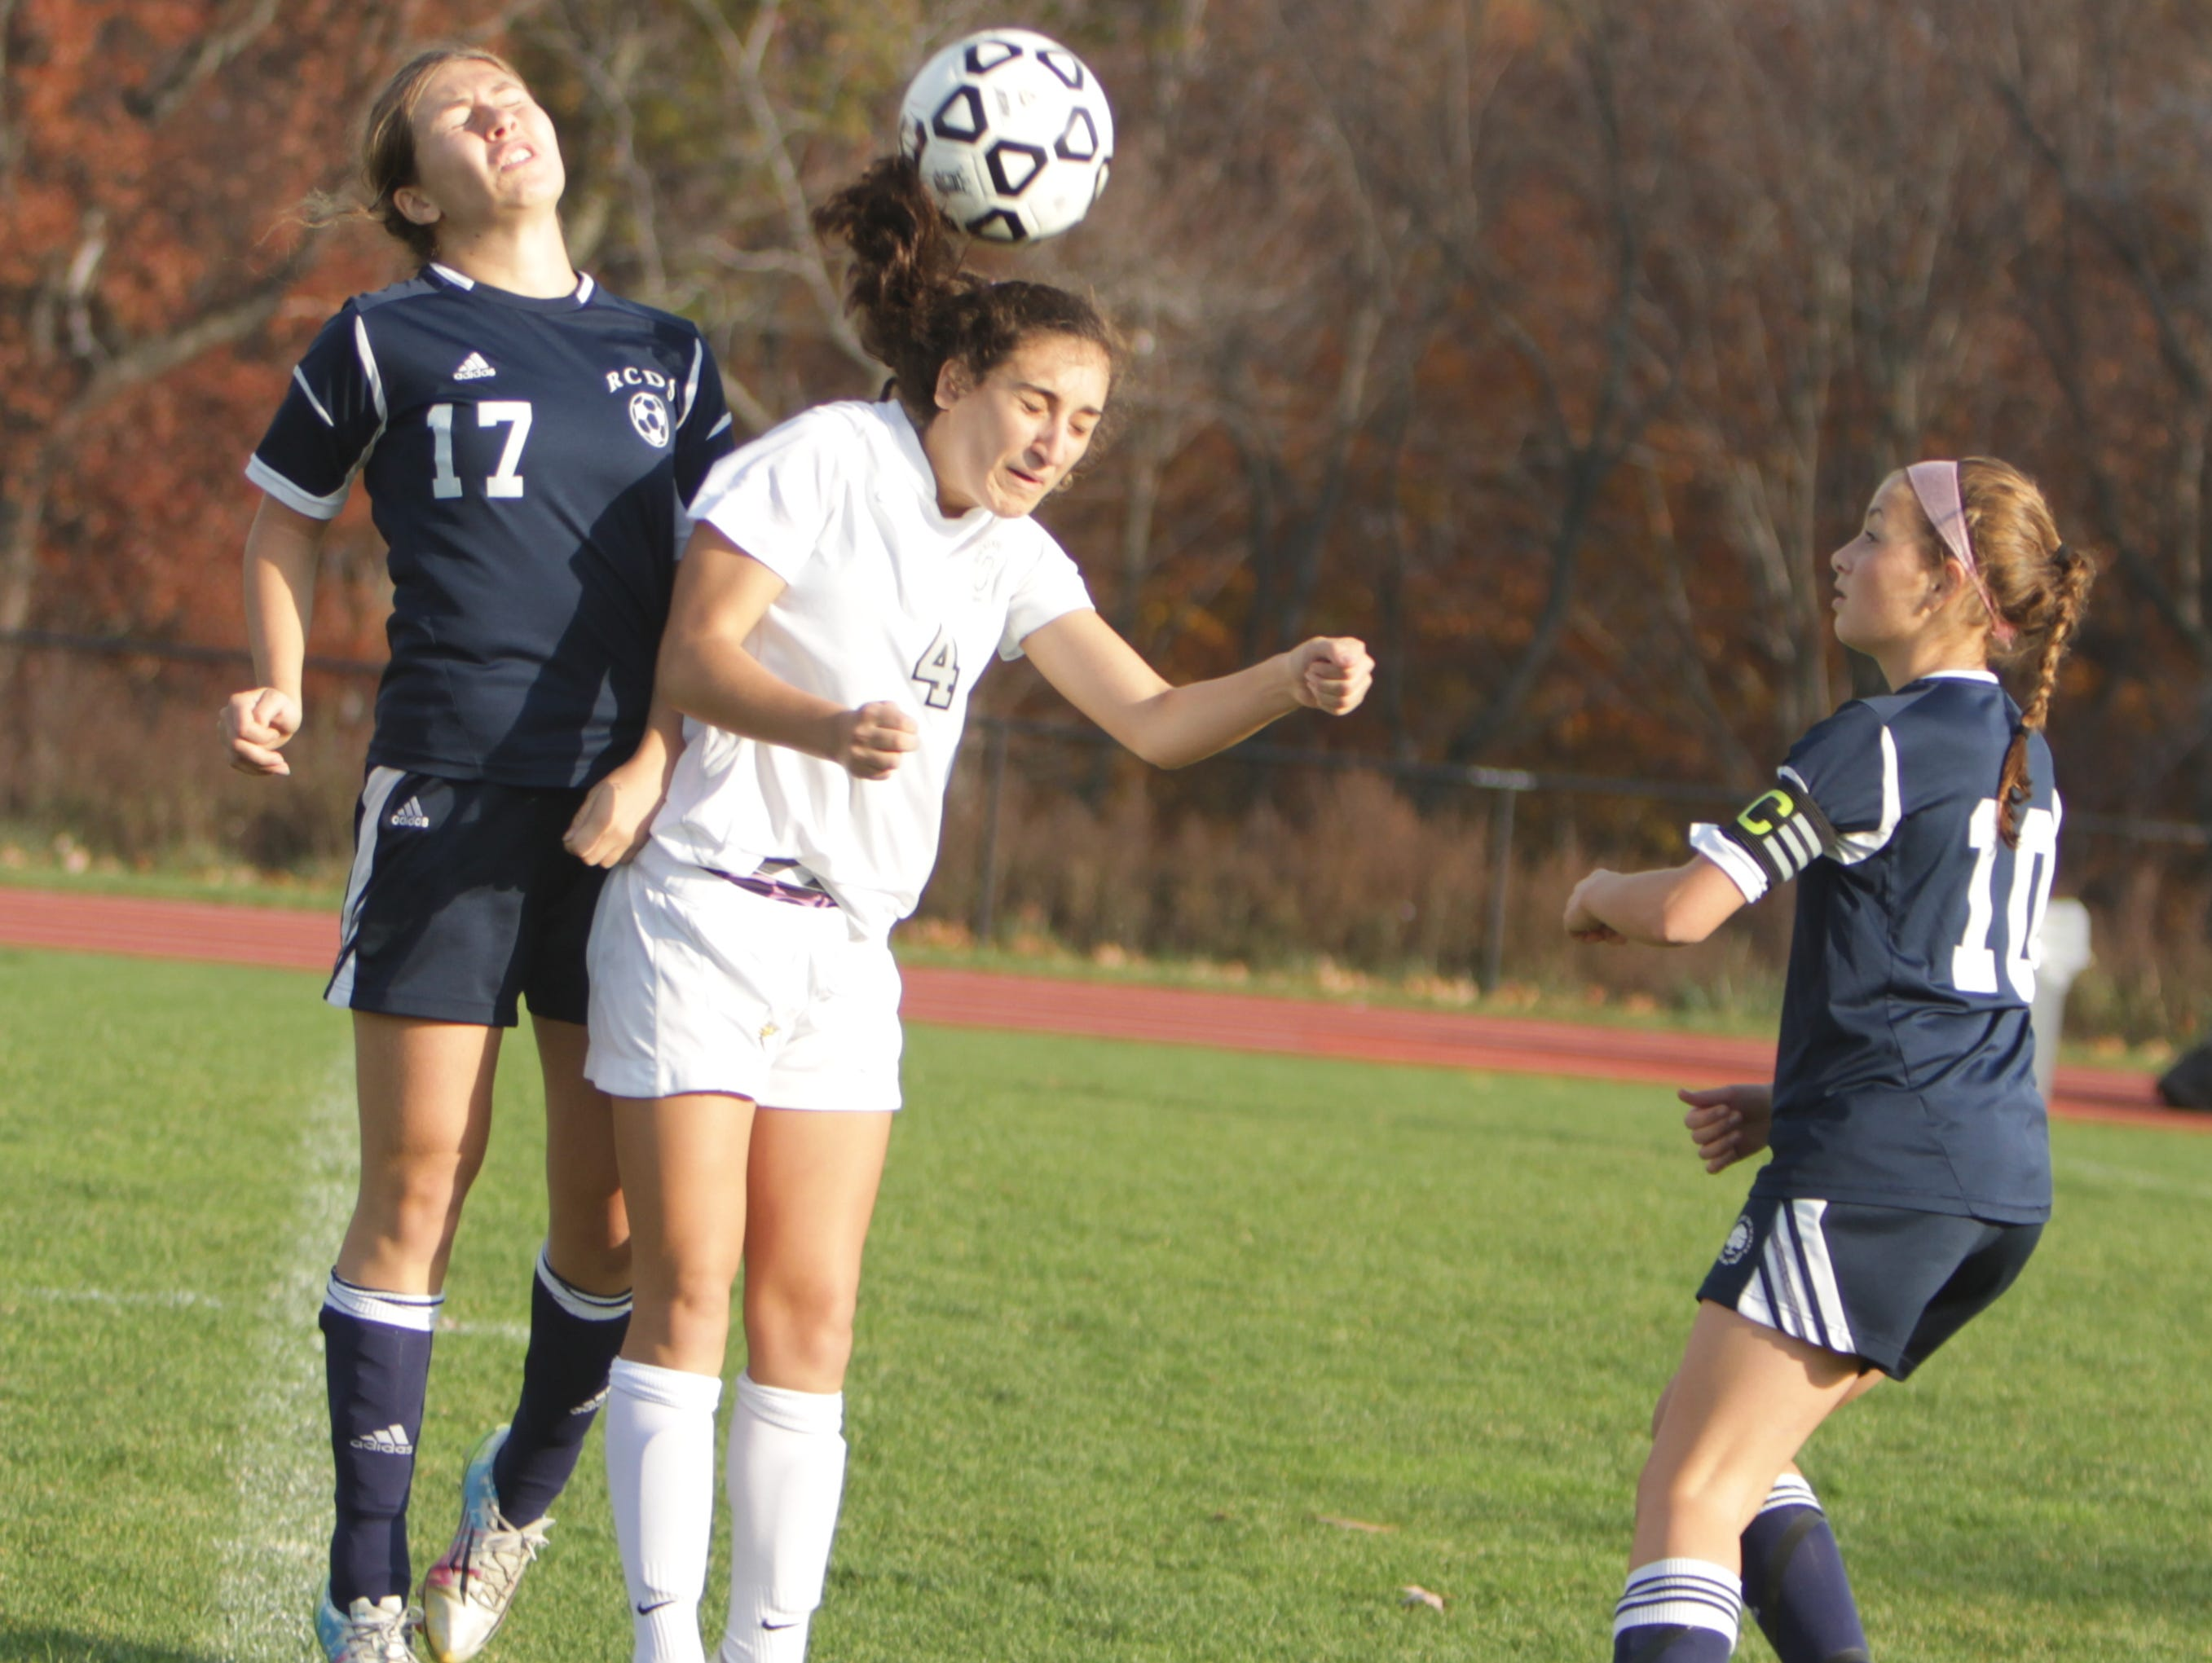 Hackley's Kat Cucullo (4) heads the ball away from Rye Country Day's Therese Mooney (17) during a NYSAIS semifinal match at the Hackley School on Friday, November 6th, 2015. Hackley won 3-1.